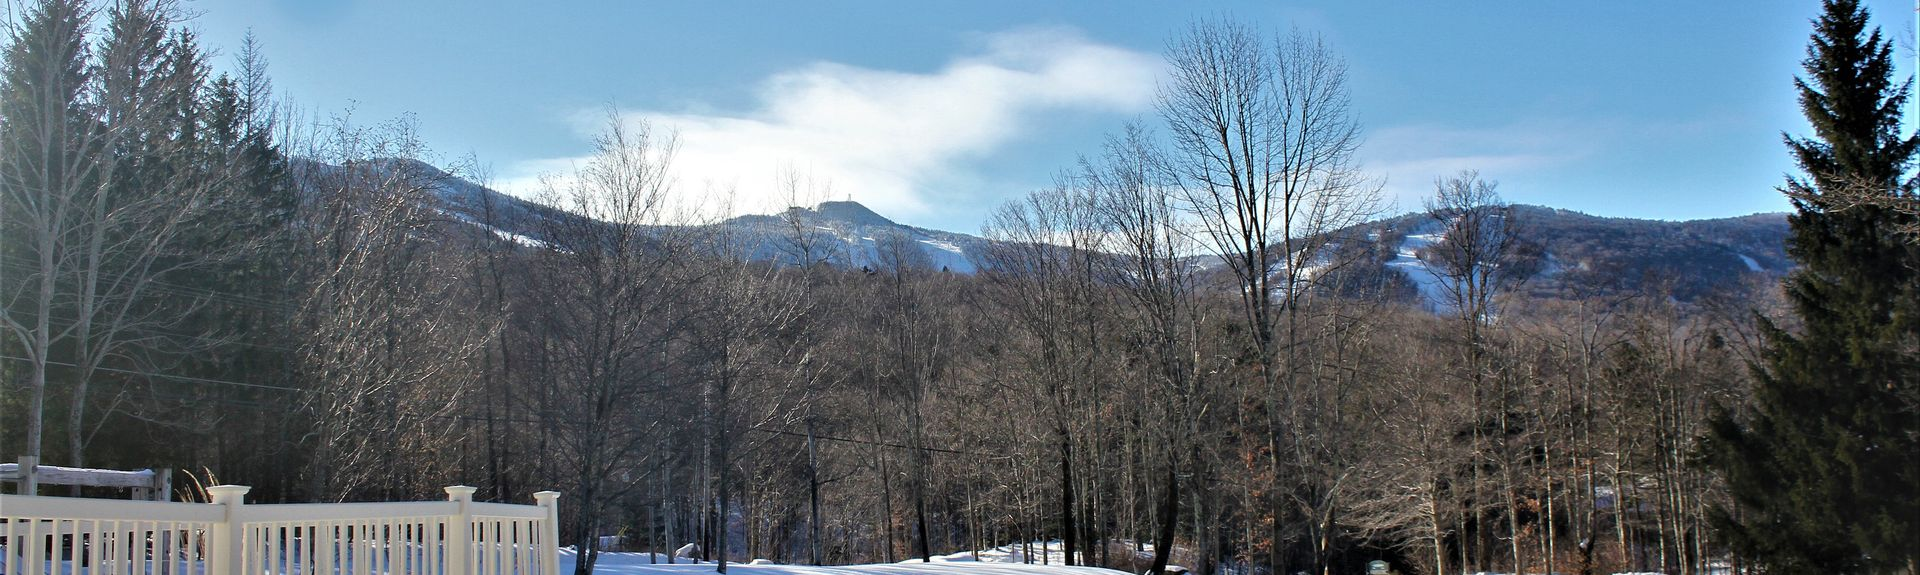 Killington Resort, Killington, Vermont, Verenigde Staten